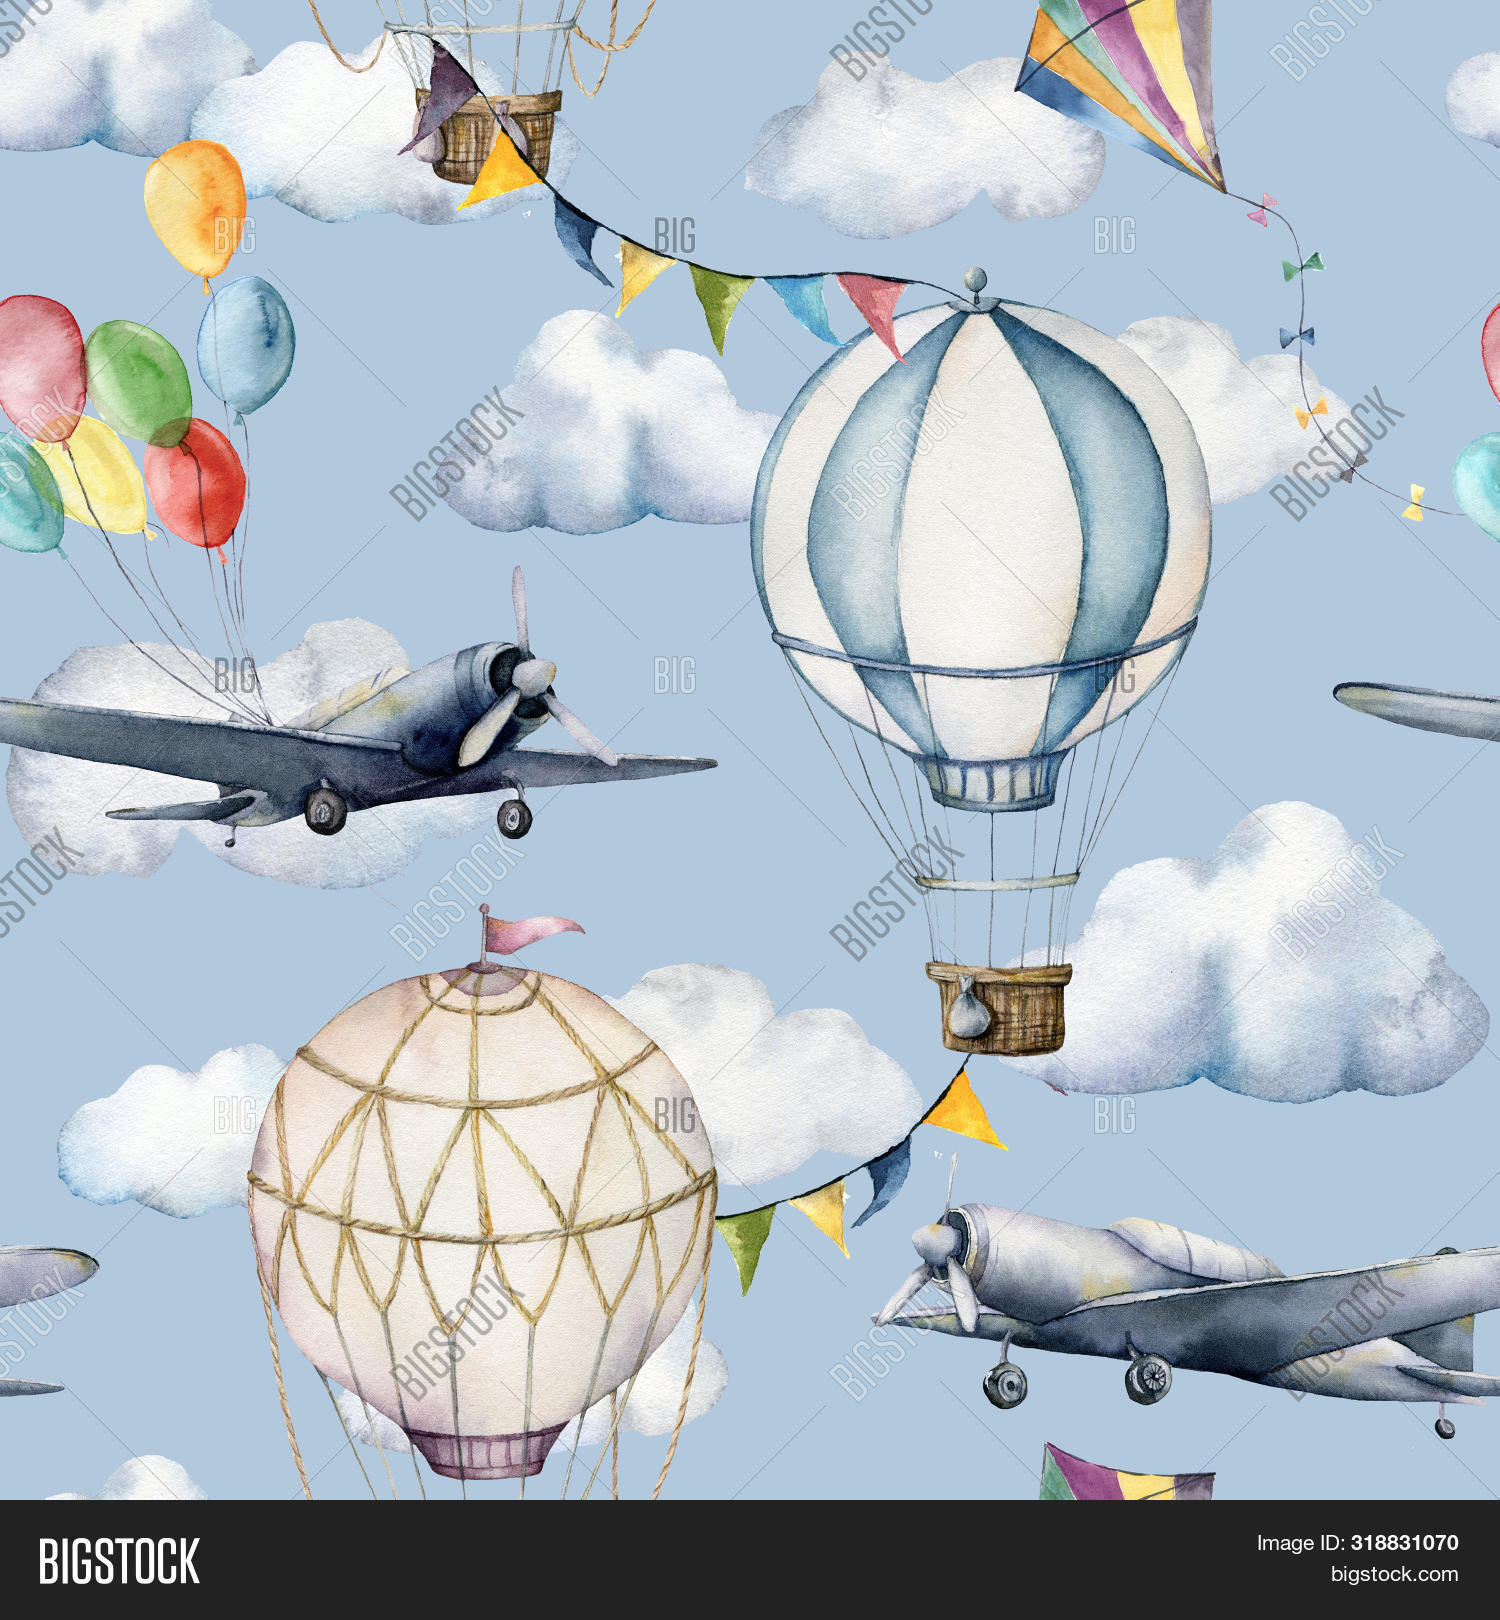 adventure,air,airplane,aviation,background,balloon,blue,cartoon,children,cloud,cover,decoration,dream,event,evolution,fabric,flag,flight,fly,freedom,garland,helium,holiday,hot,package,pastel,pattern,pilot,plane,poster,propeller,retro,seamless,sky,stripe,summer,template,textile,texture,tourism,transport,travel,vintage,voyage,watercolor,wedding,wrapping